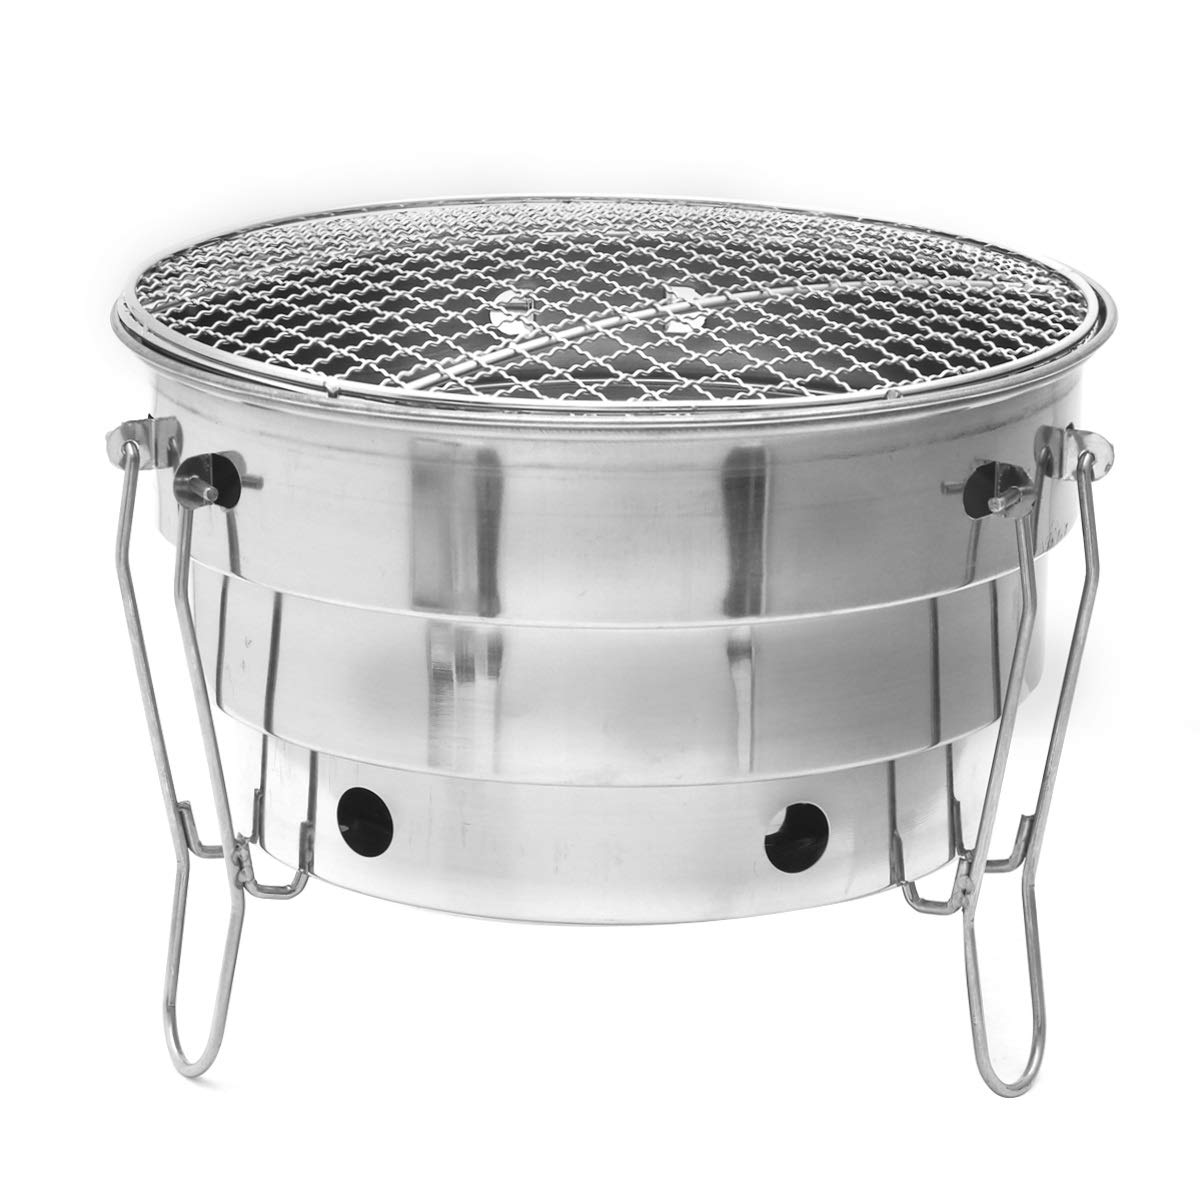 Stainless Steel BBQ Charcoal Grill Foldable Portable Cooking Outdoor Camping Burner Home Courtyard Furnace Family Reunion by Makang